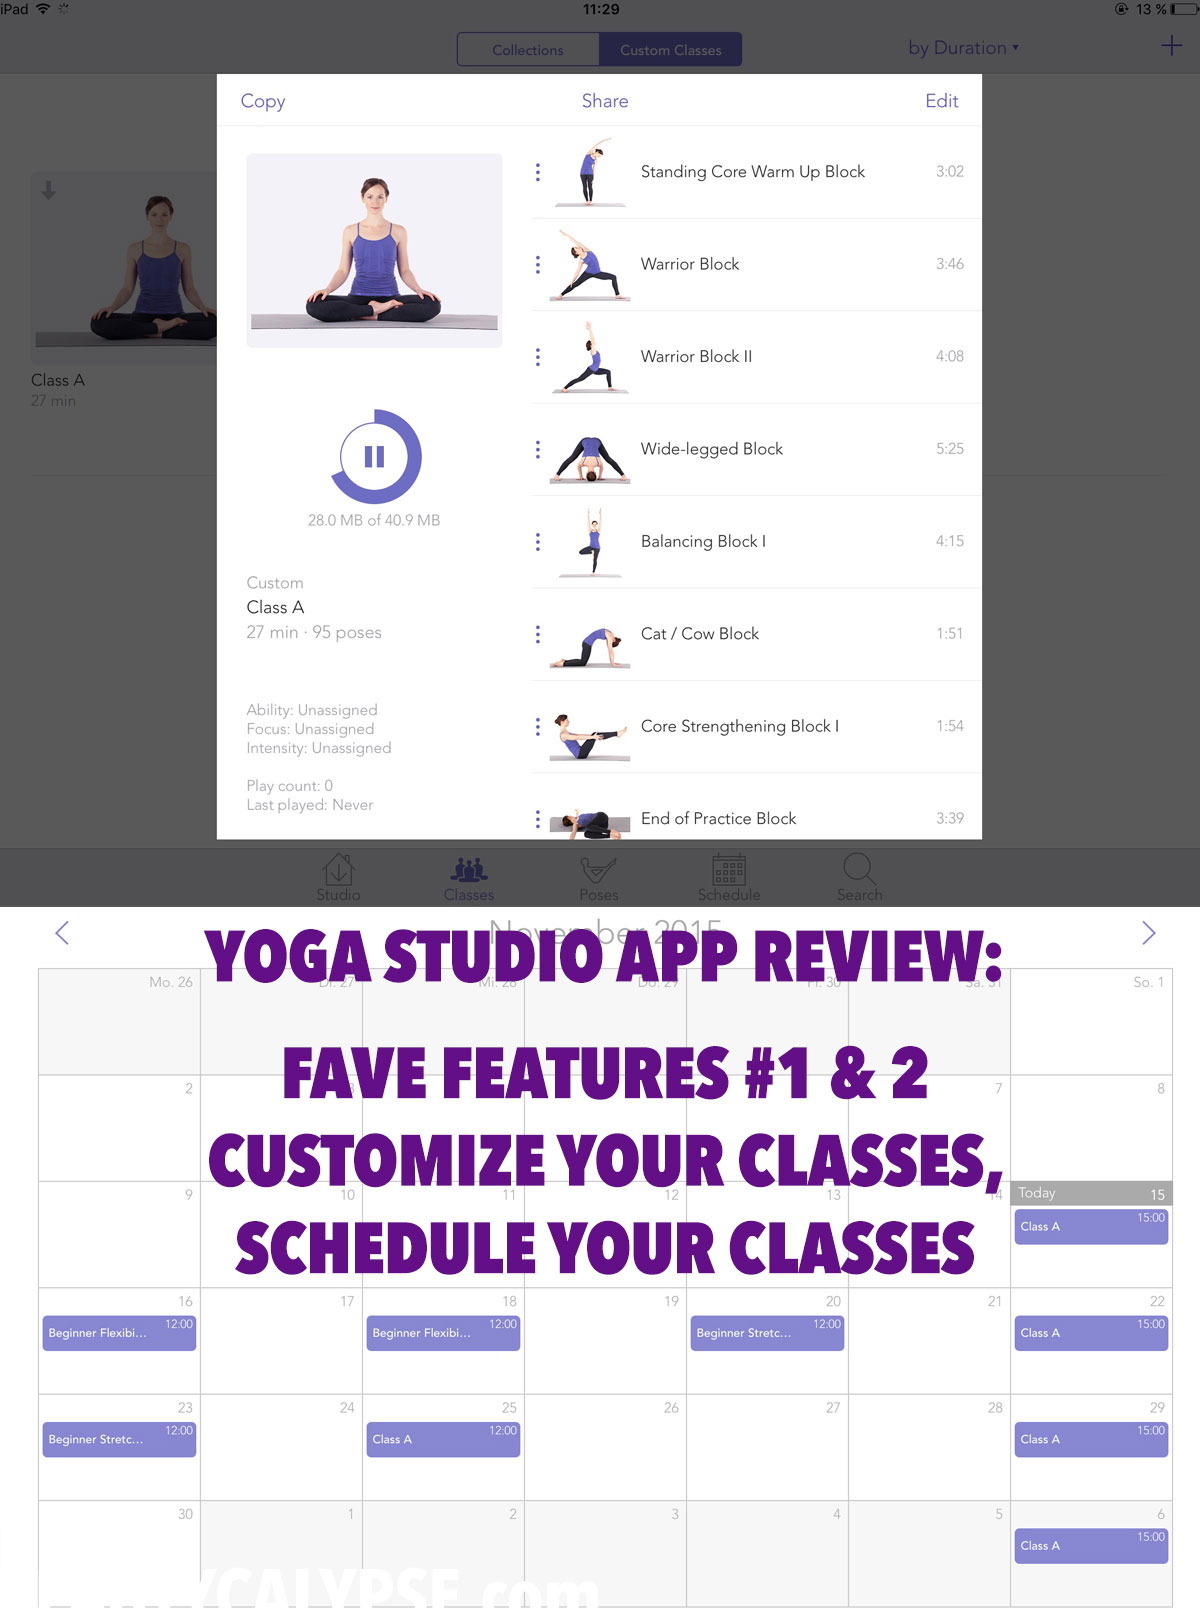 YogaStudio-Review-FavouriteFeatures-Custom-Schedule